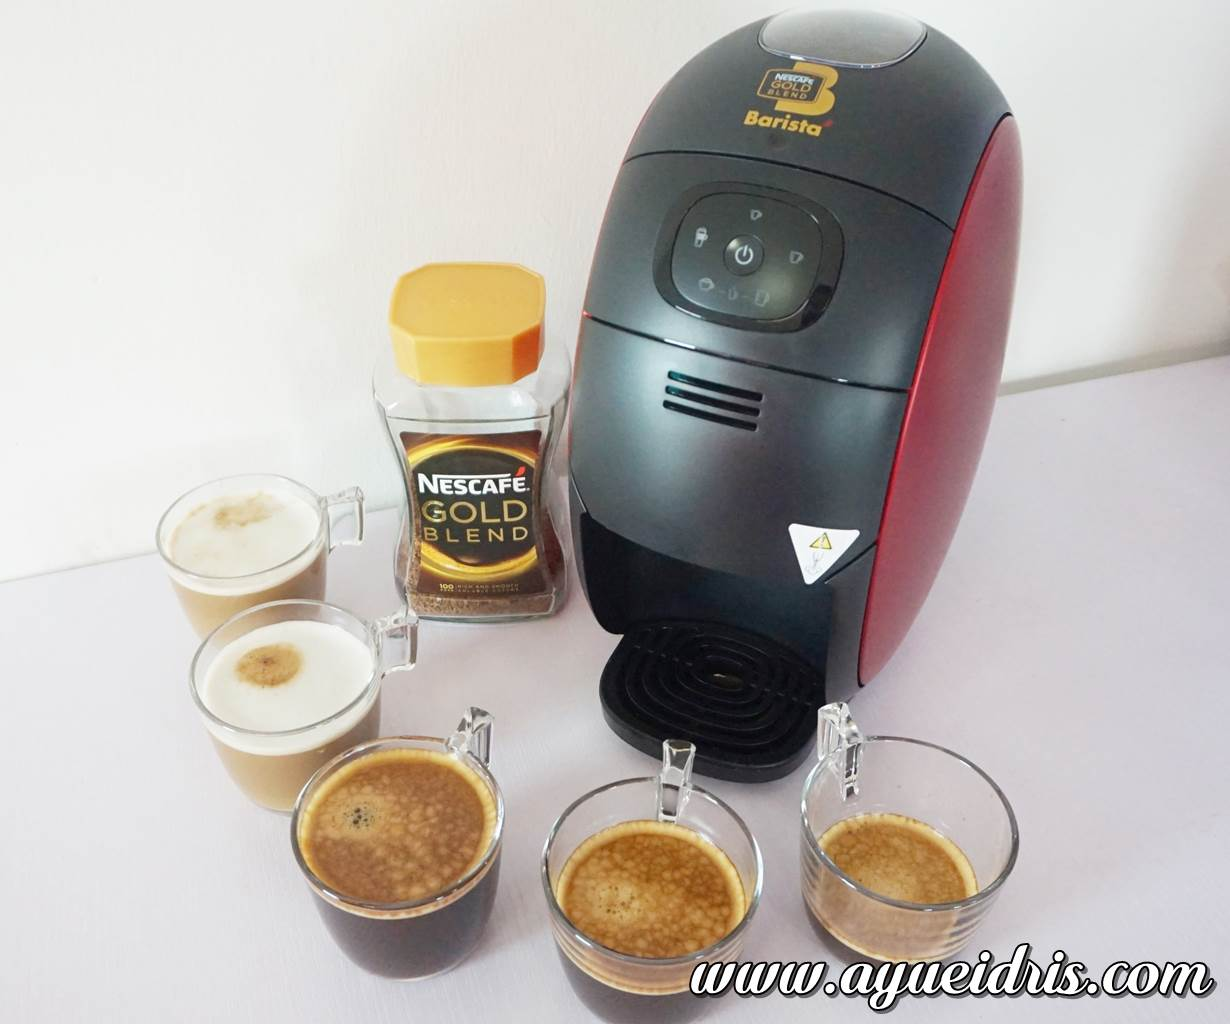 Nescafe Gold Barista Coffee Machine cara guna harga (37).JPG